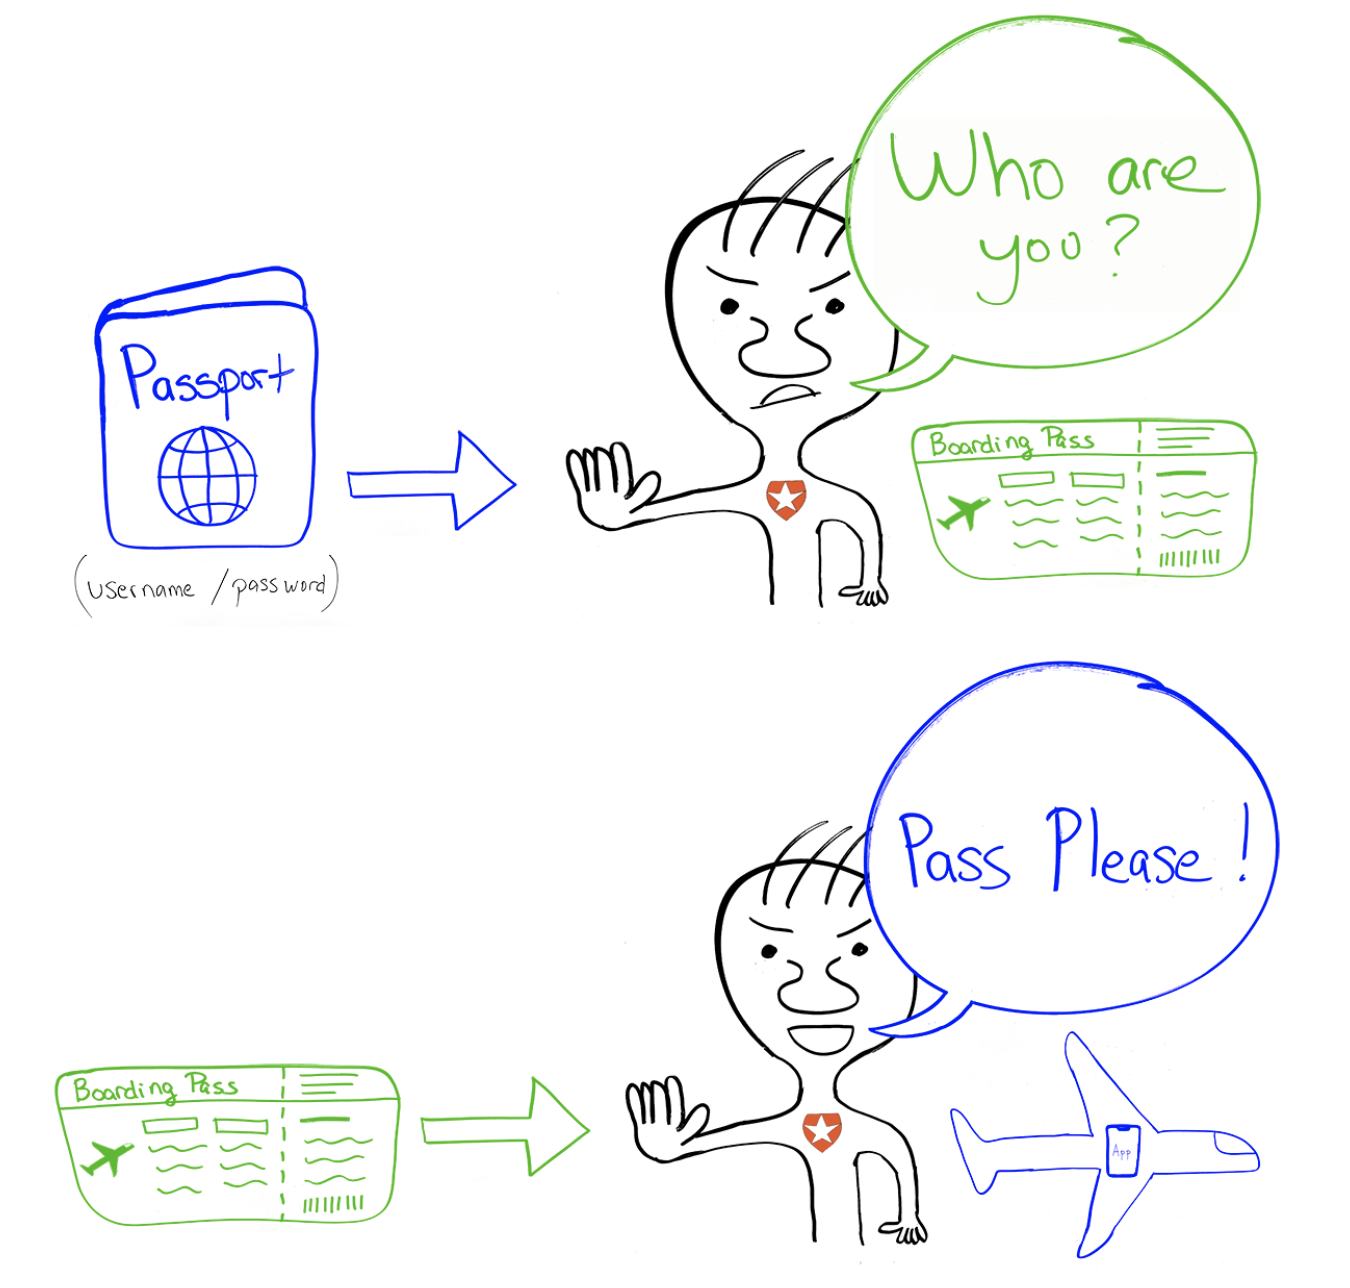 Passport Authorization Example graphic drawing